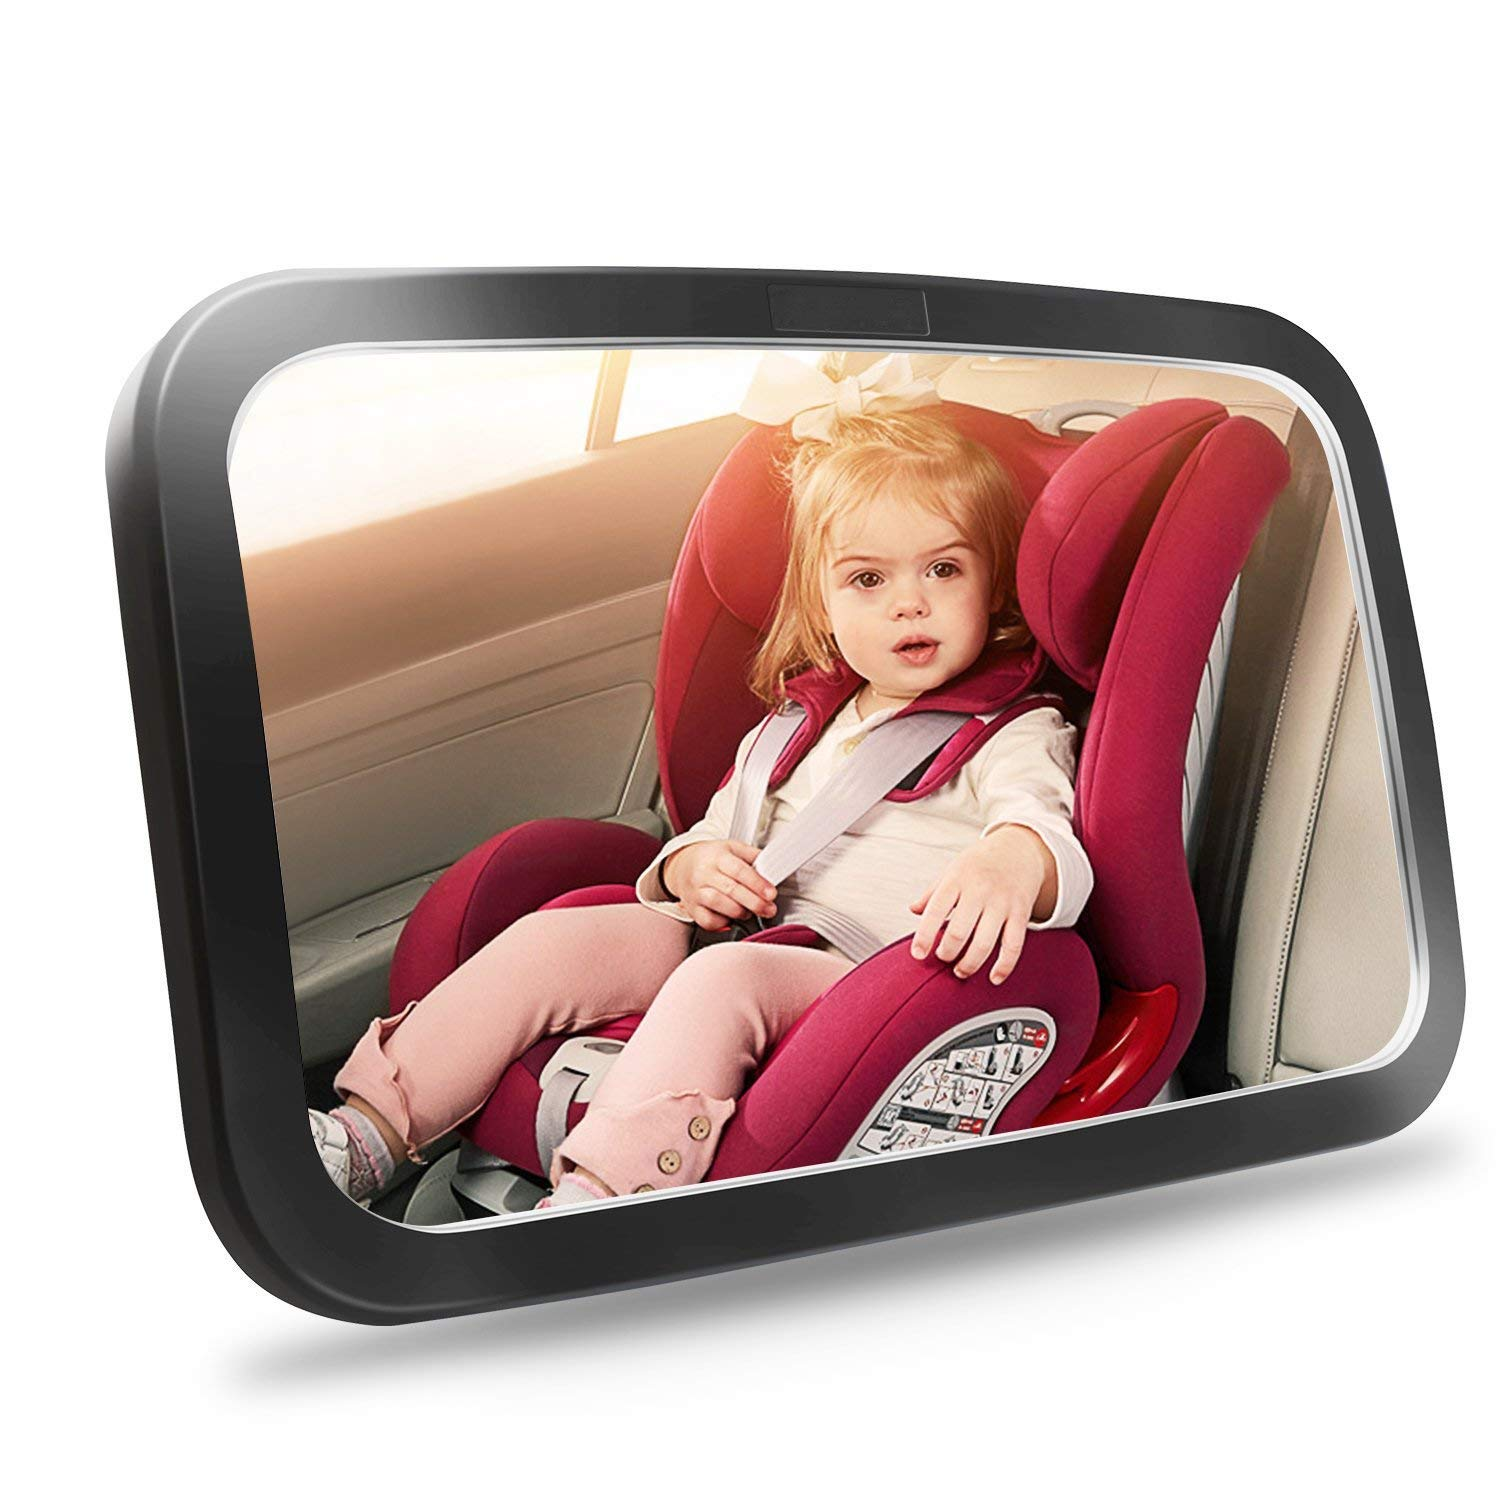 Baby Car Mirror, Safety Car Seat Mirror for Rear Facing Infant with Wide Crystal Clear View, Shatterproof, Fully Assembled, Cr